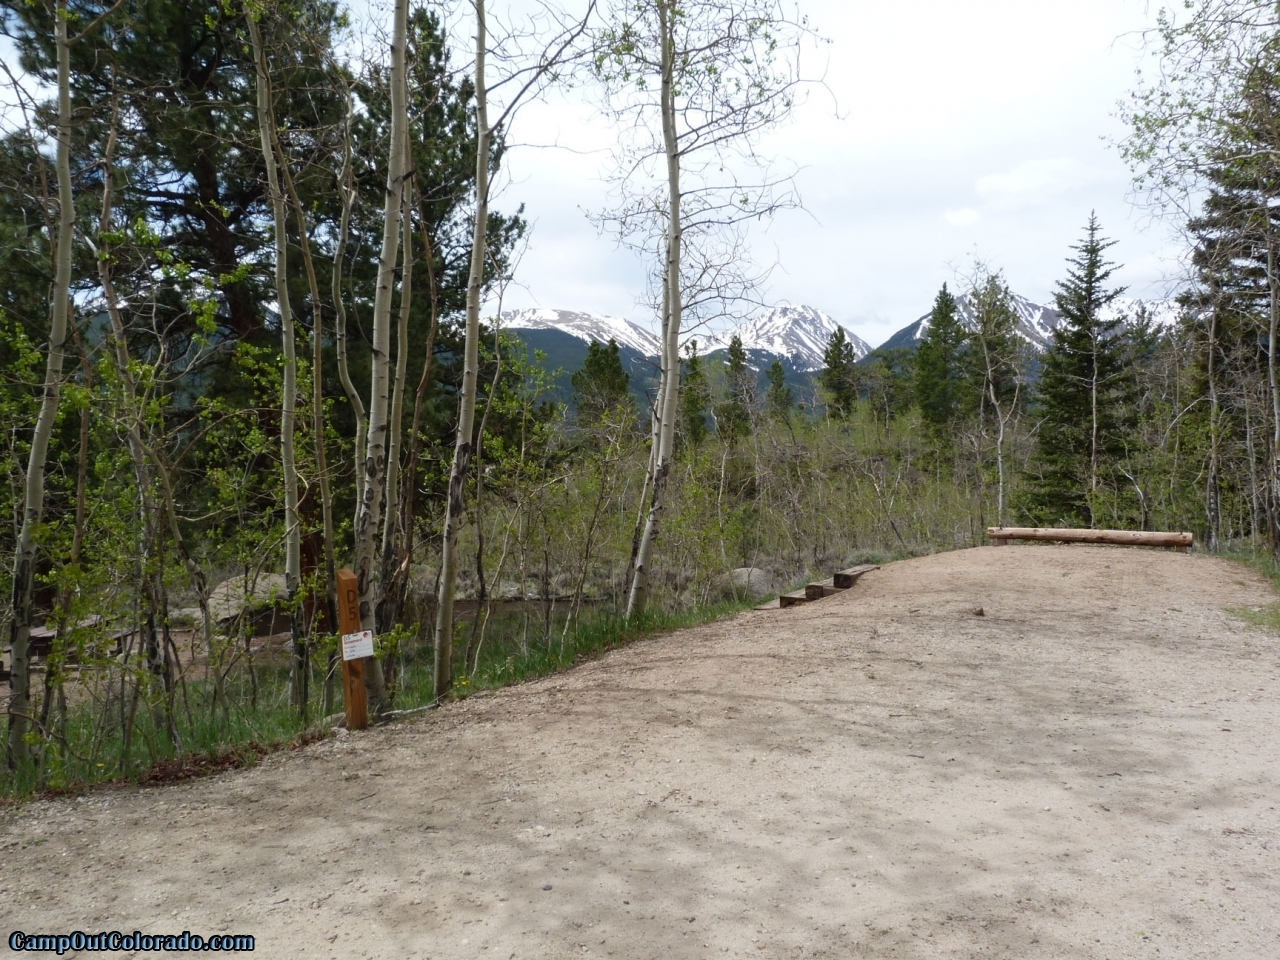 camp-out-colorado-lakeview-campground-parking-over-campsite